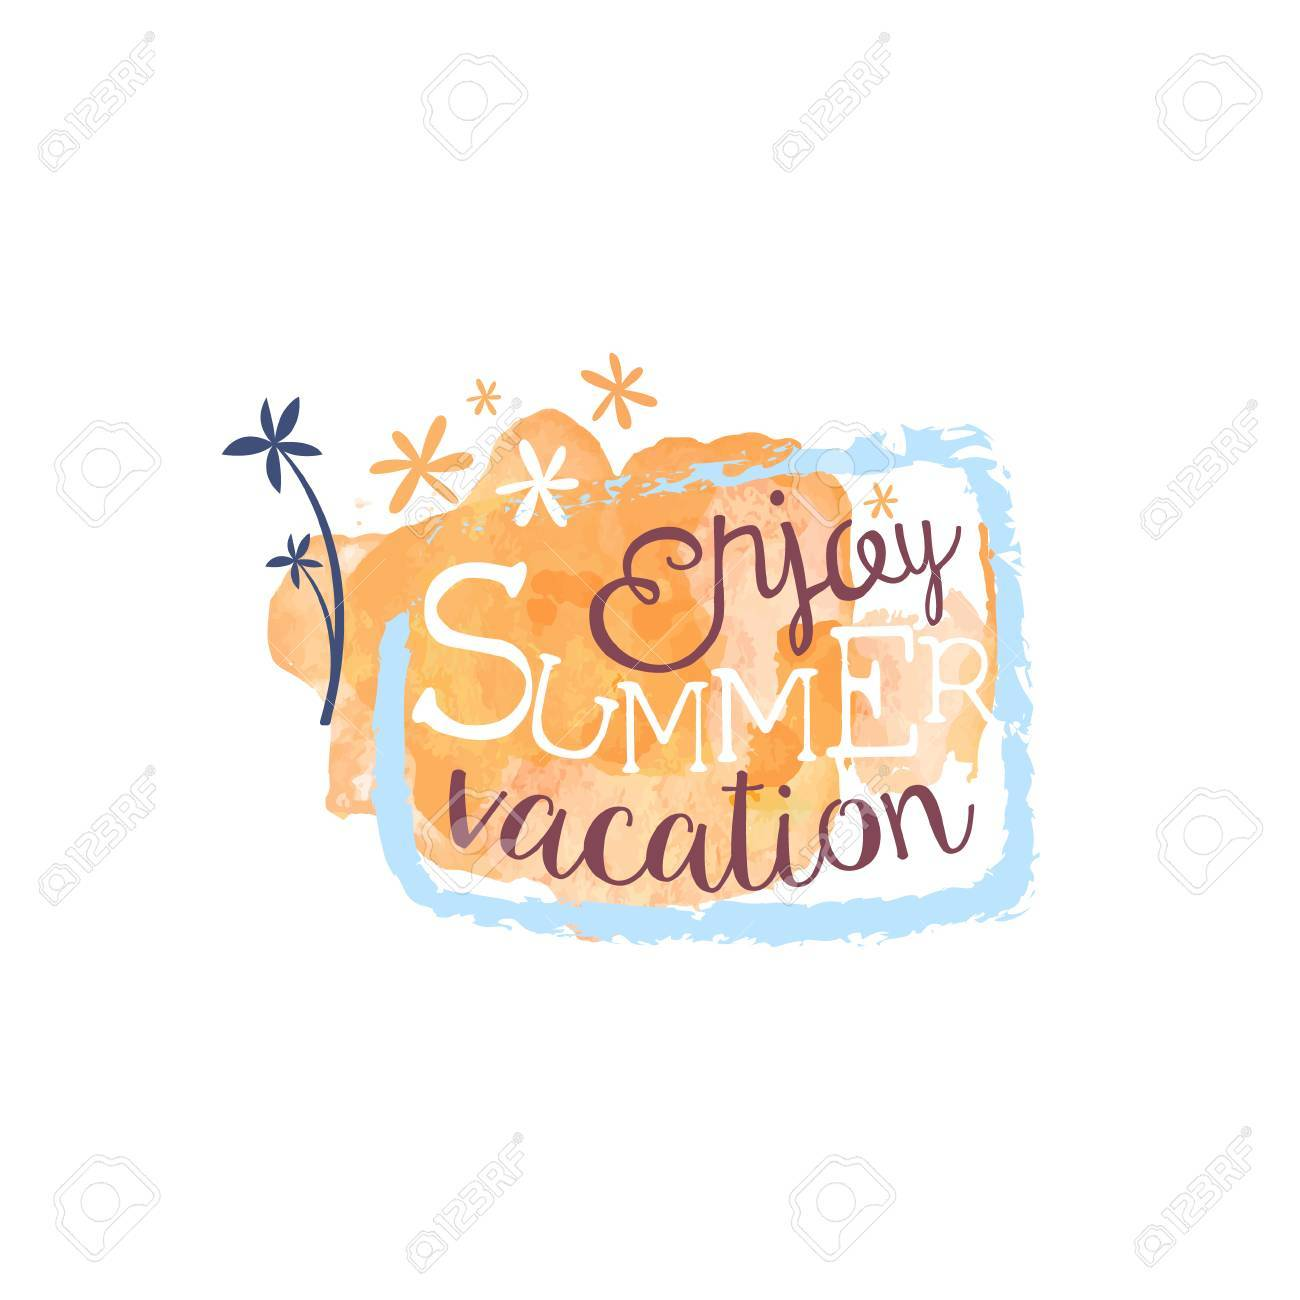 Enjoy Summer Vacation Message Watercolor Stylized Label Bright Color Hand Drawn Promo Sign